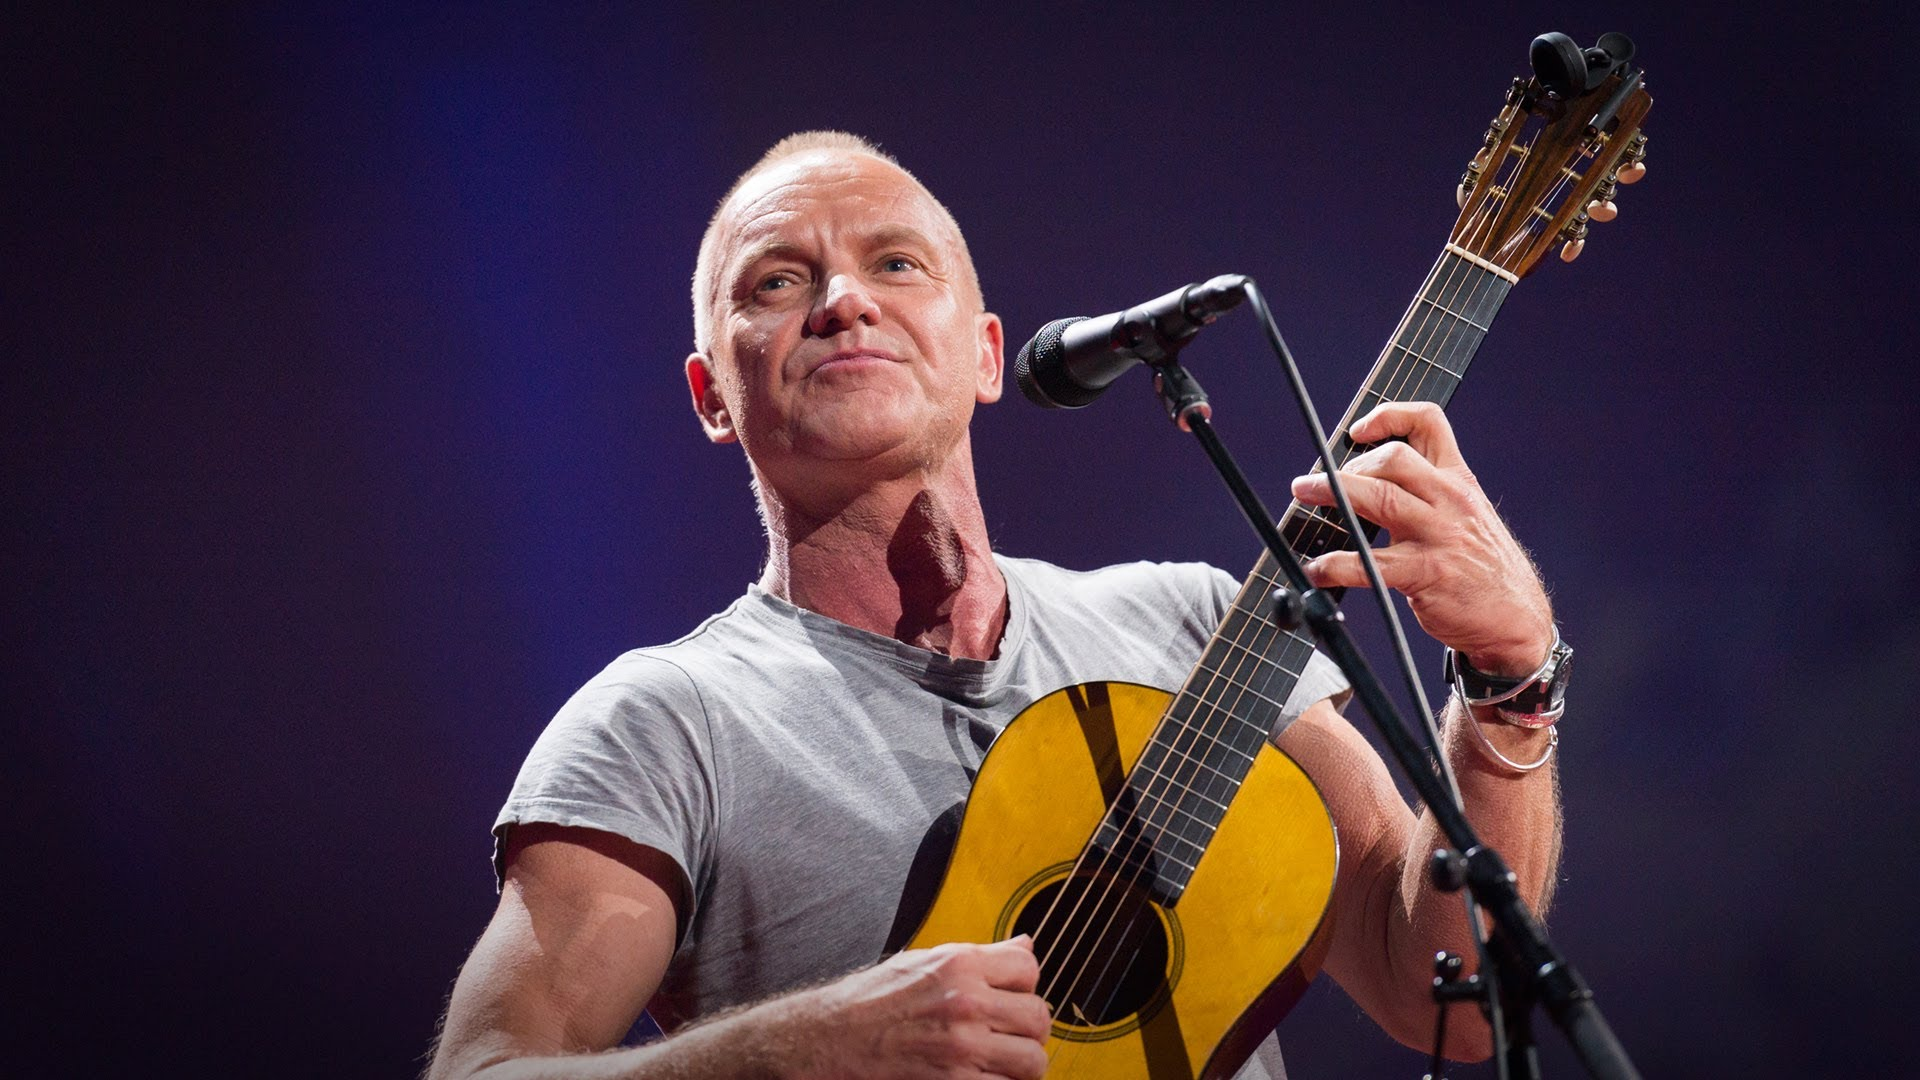 'How I Started Writing Songs Again', A TED Talk by Sting About How He Overcame Writer's Block by Returning Home